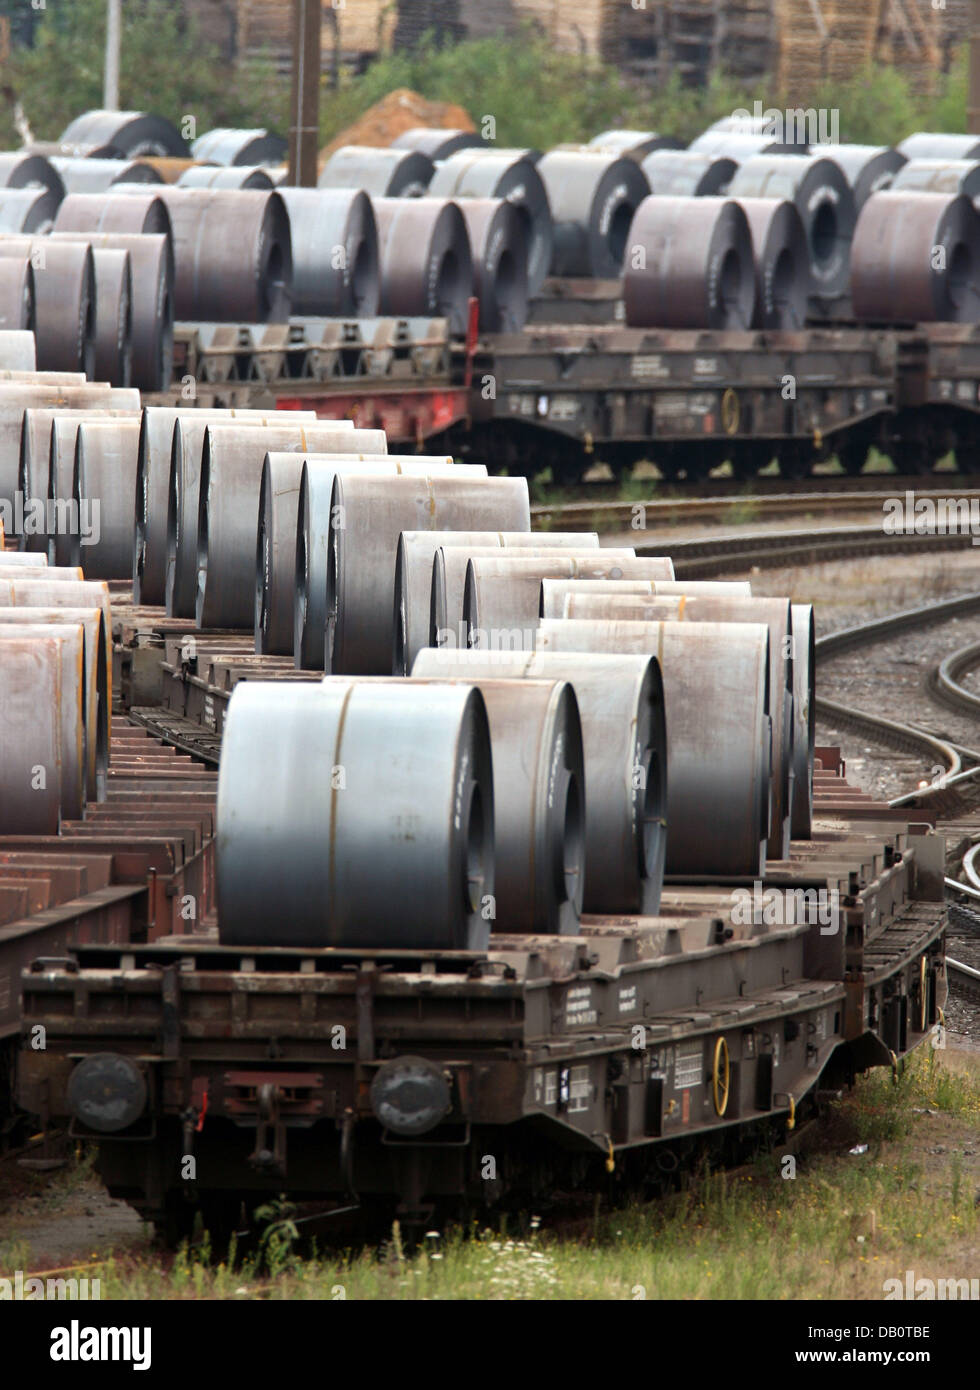 The picture shows waggons with steel coils at the premises of the ThyssenKrupp steelworks in Duisburg-Beeck, Germany, - Stock Image